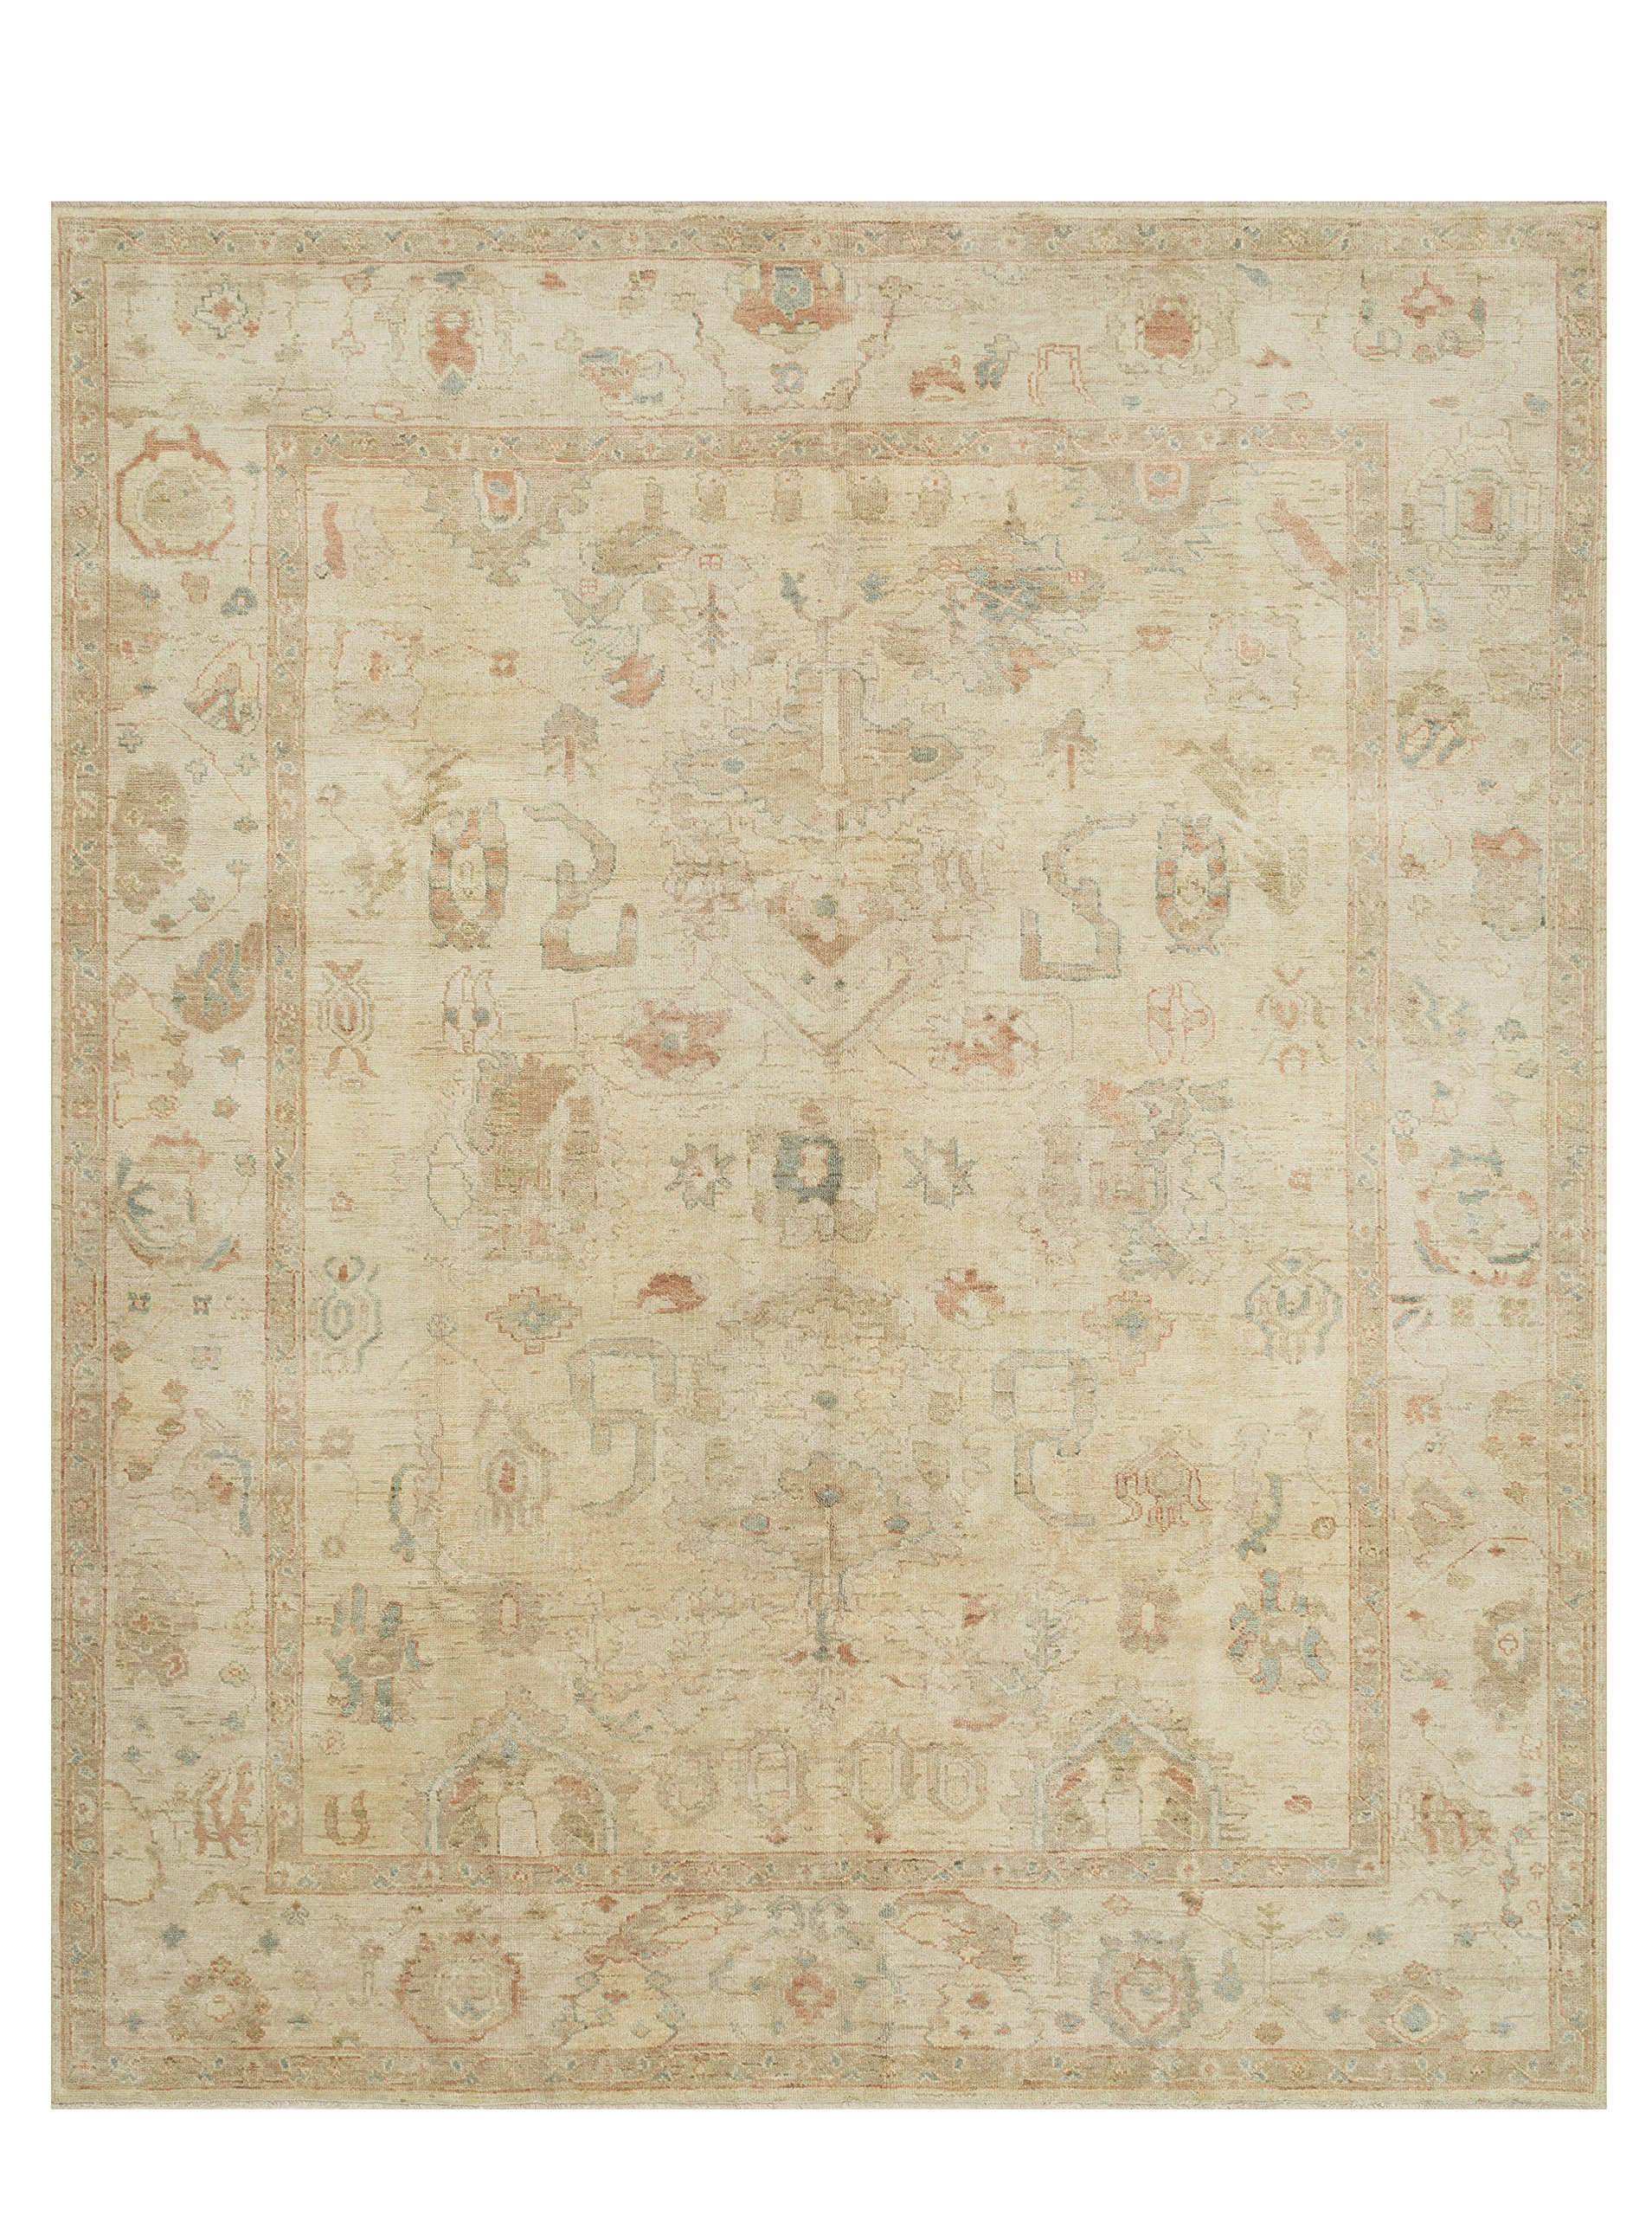 Loloi Rugs Vincent Collection Traditional Area Rug, 8-Feet 6-Inch by 11-Feet 6-Inch, Stone/Stone